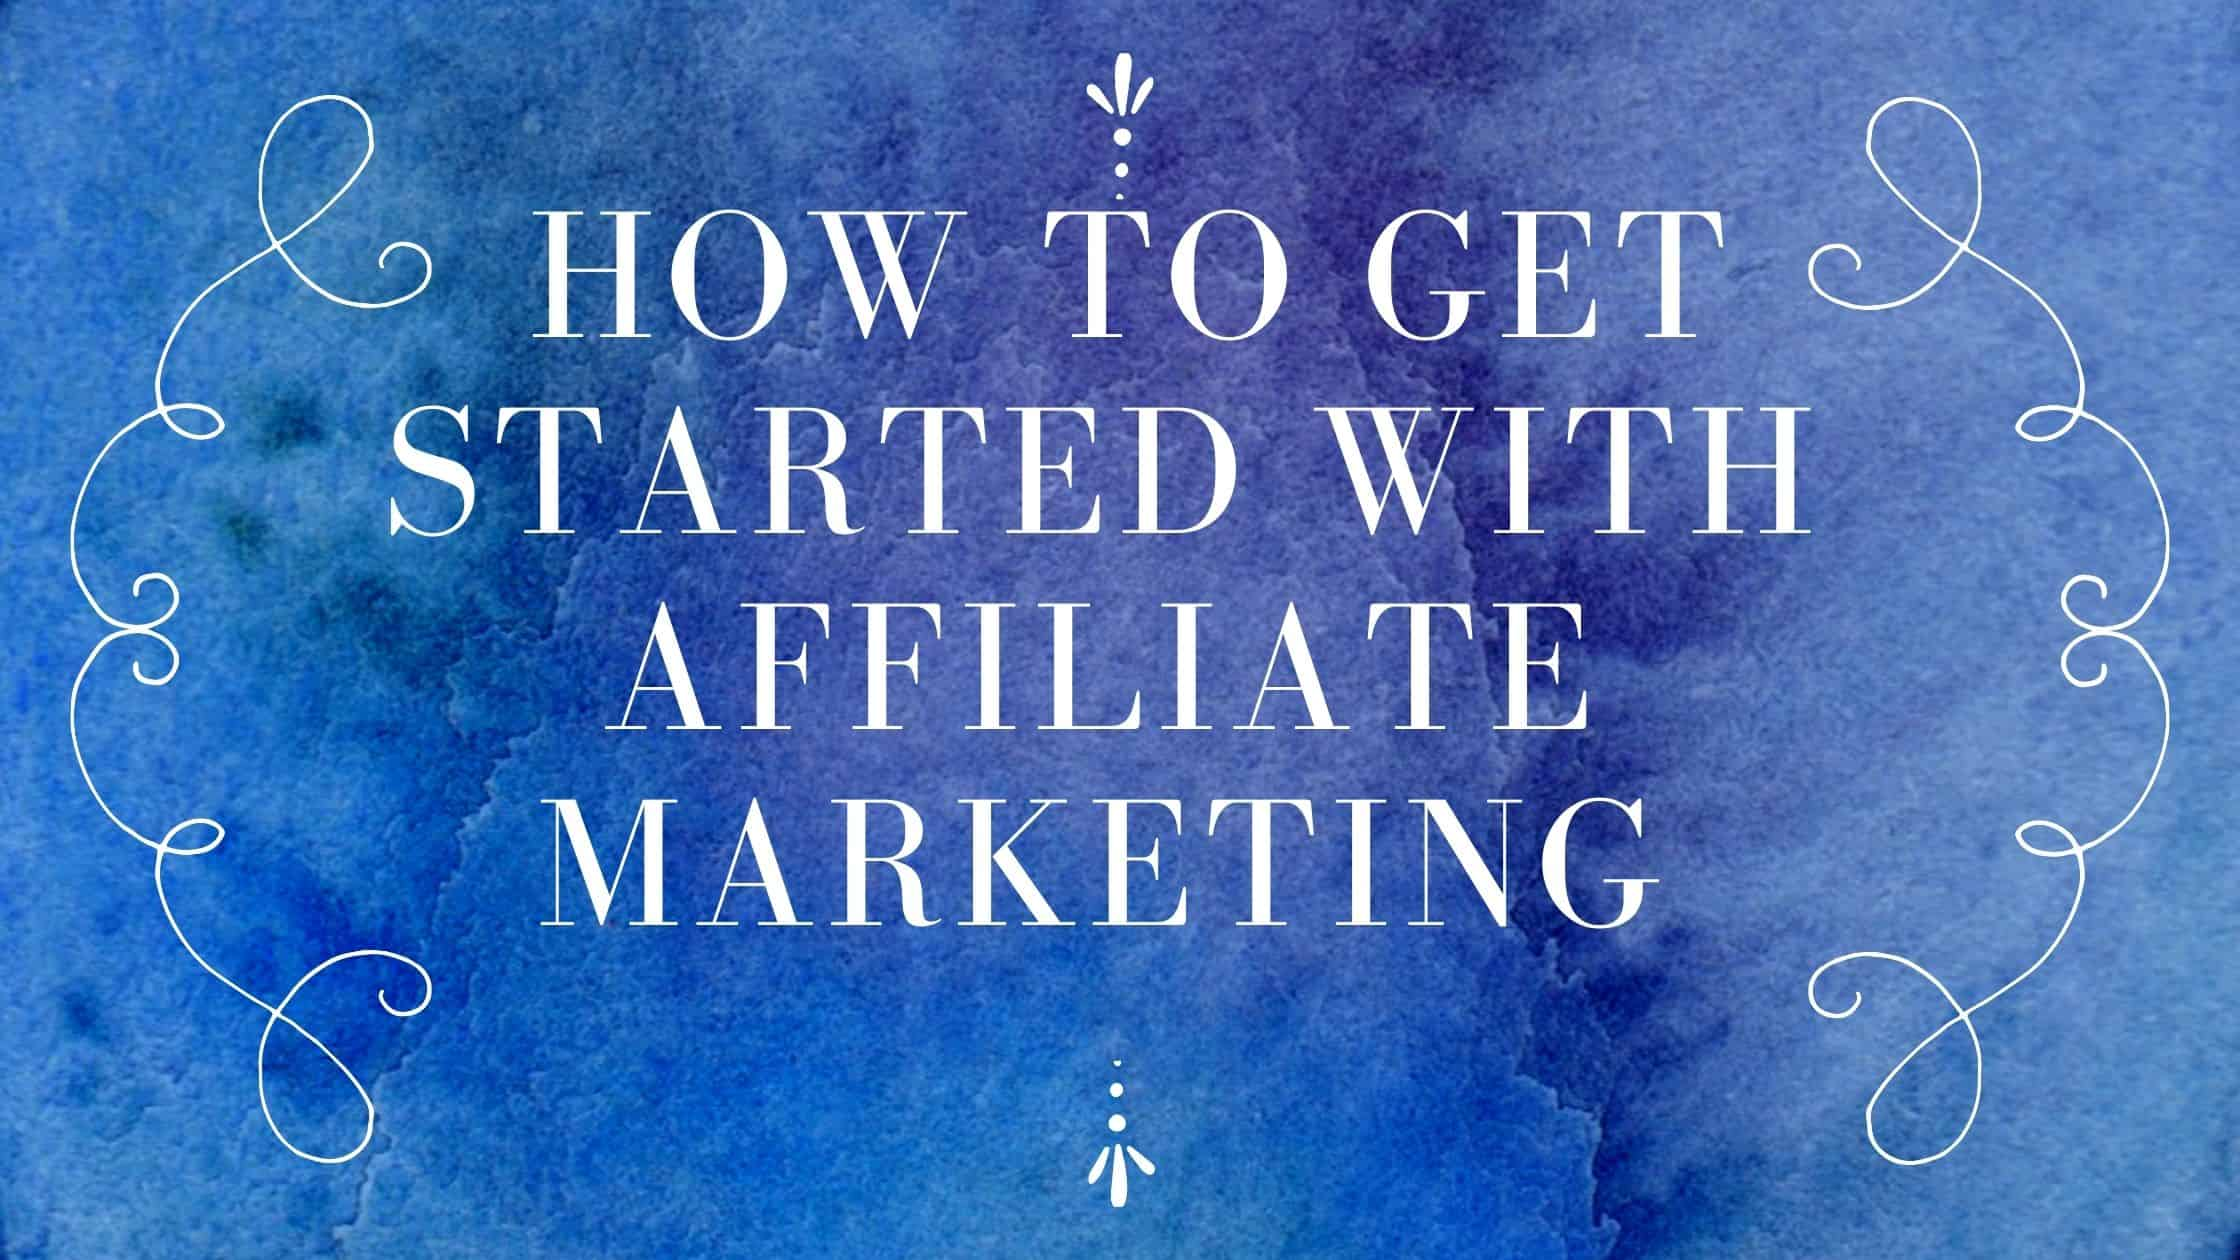 How To Get Started With Affiliate Marketinget Started